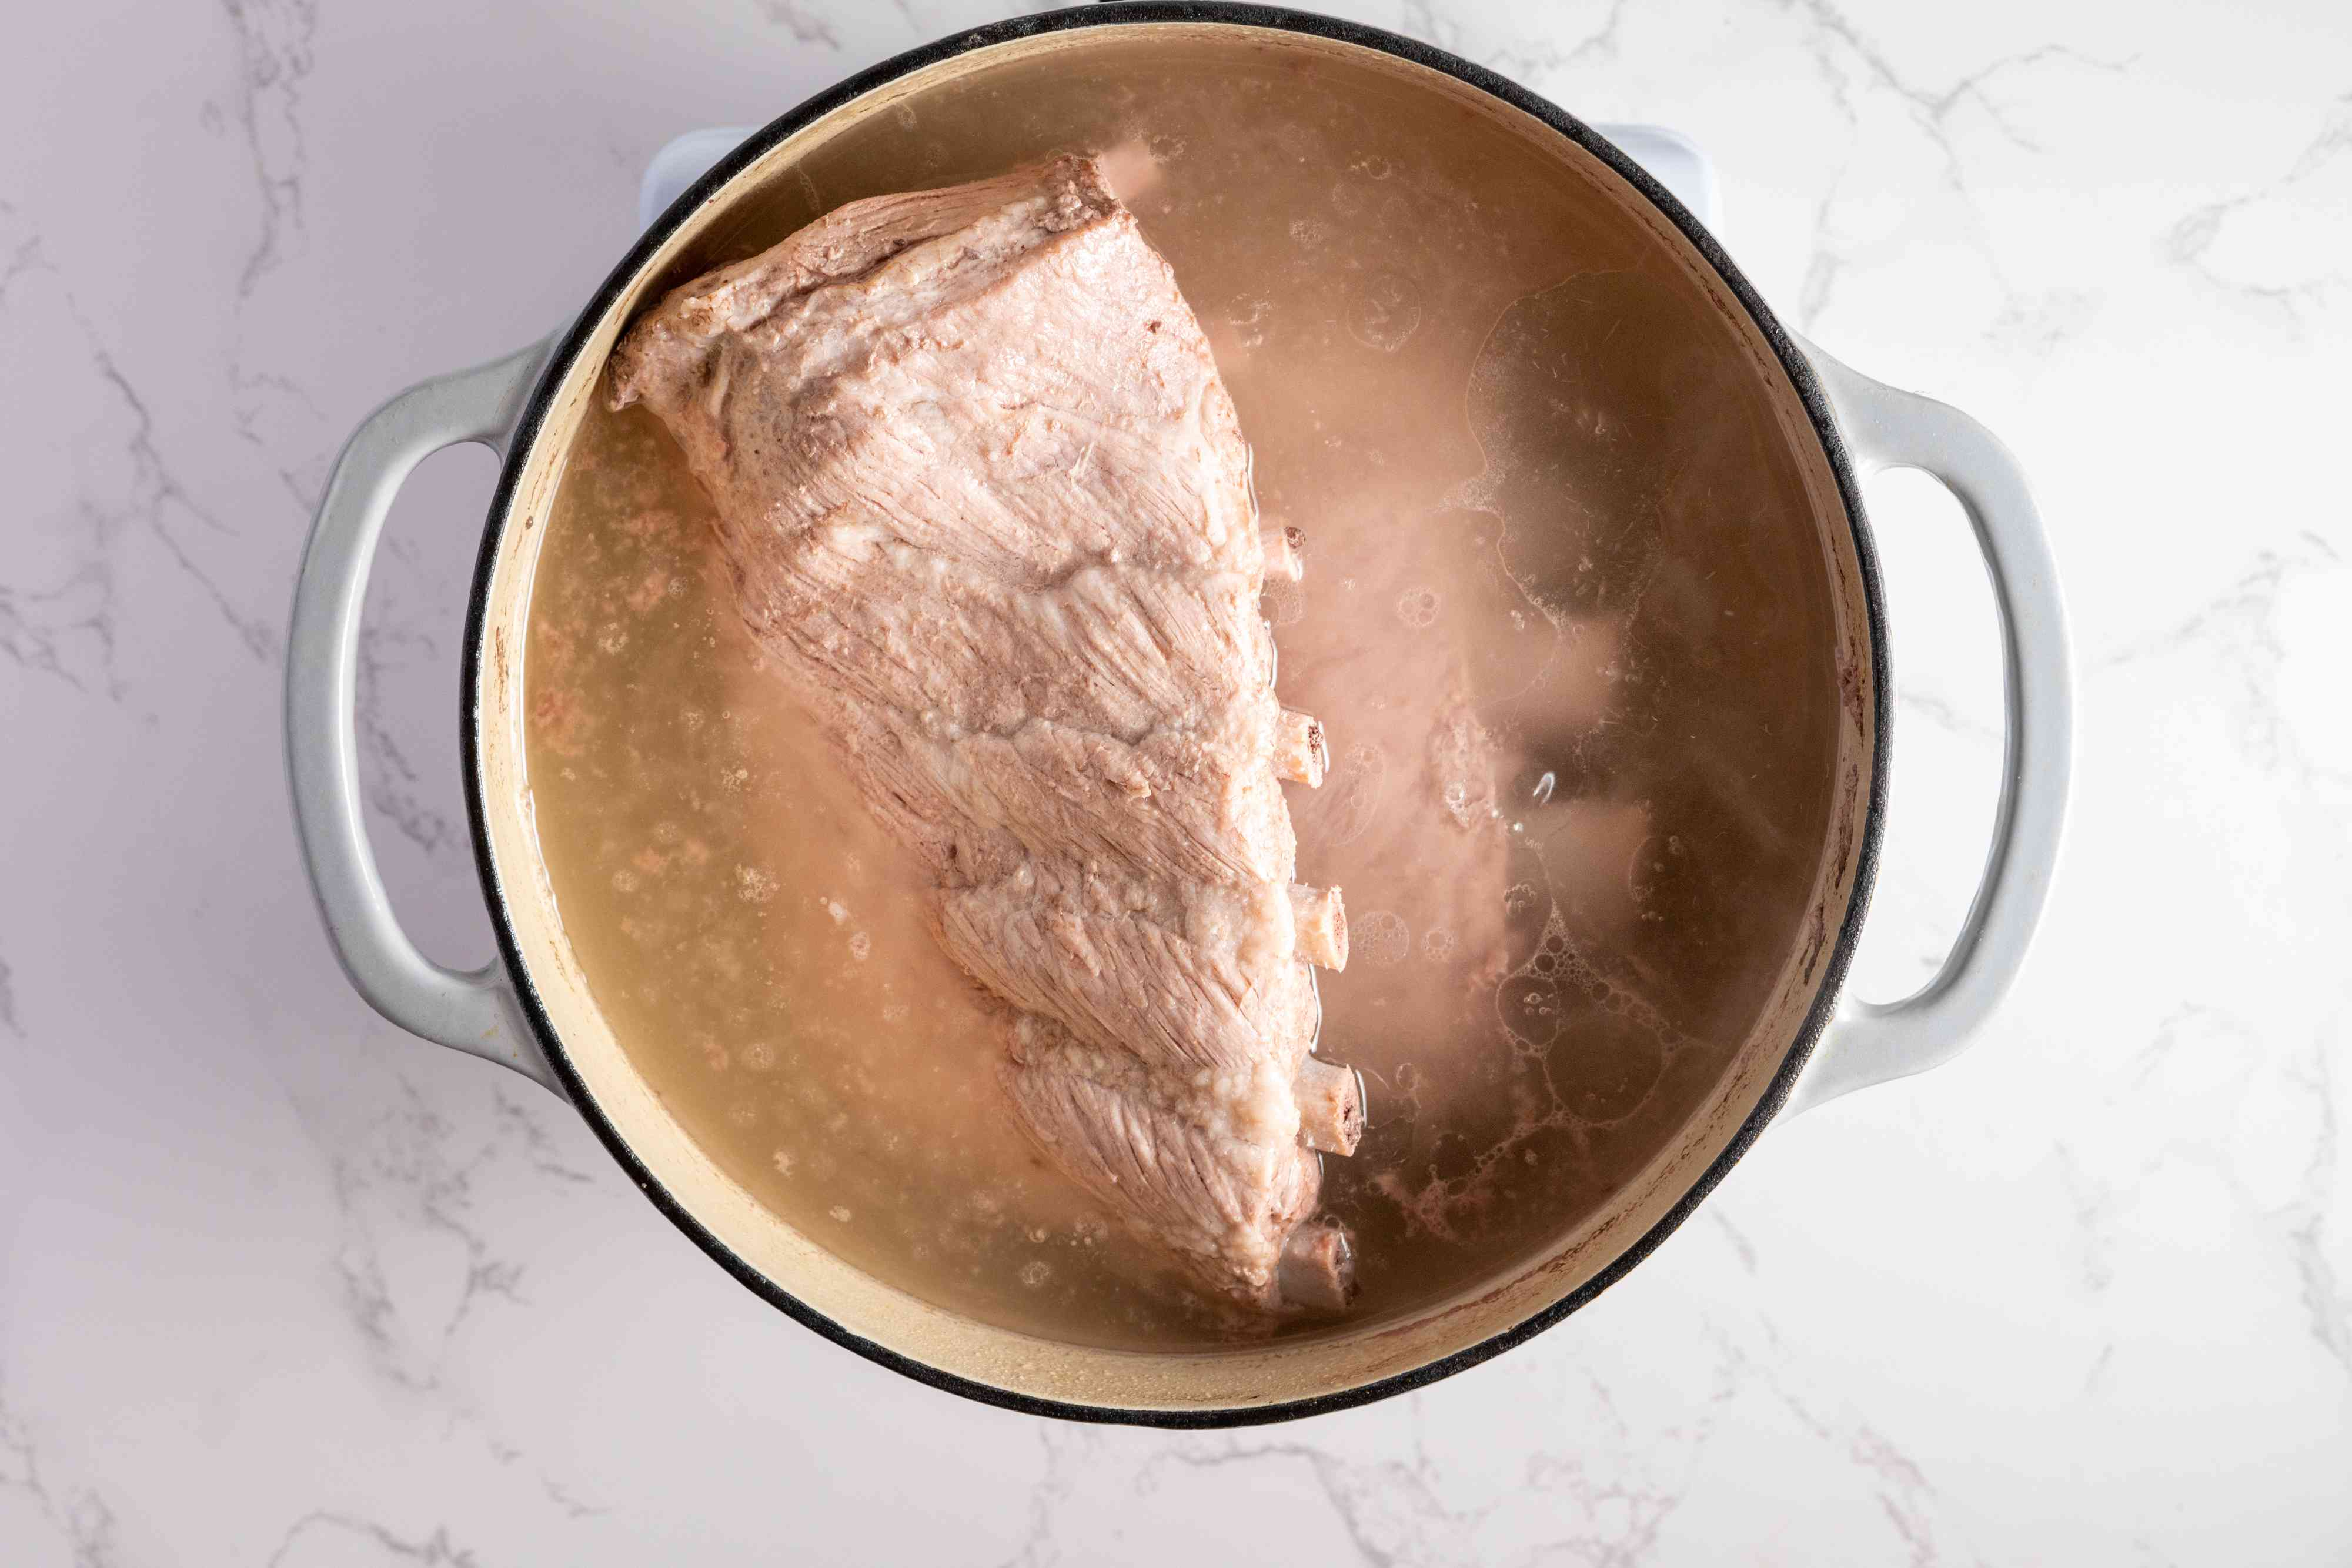 spareribs cooking in a pot with water